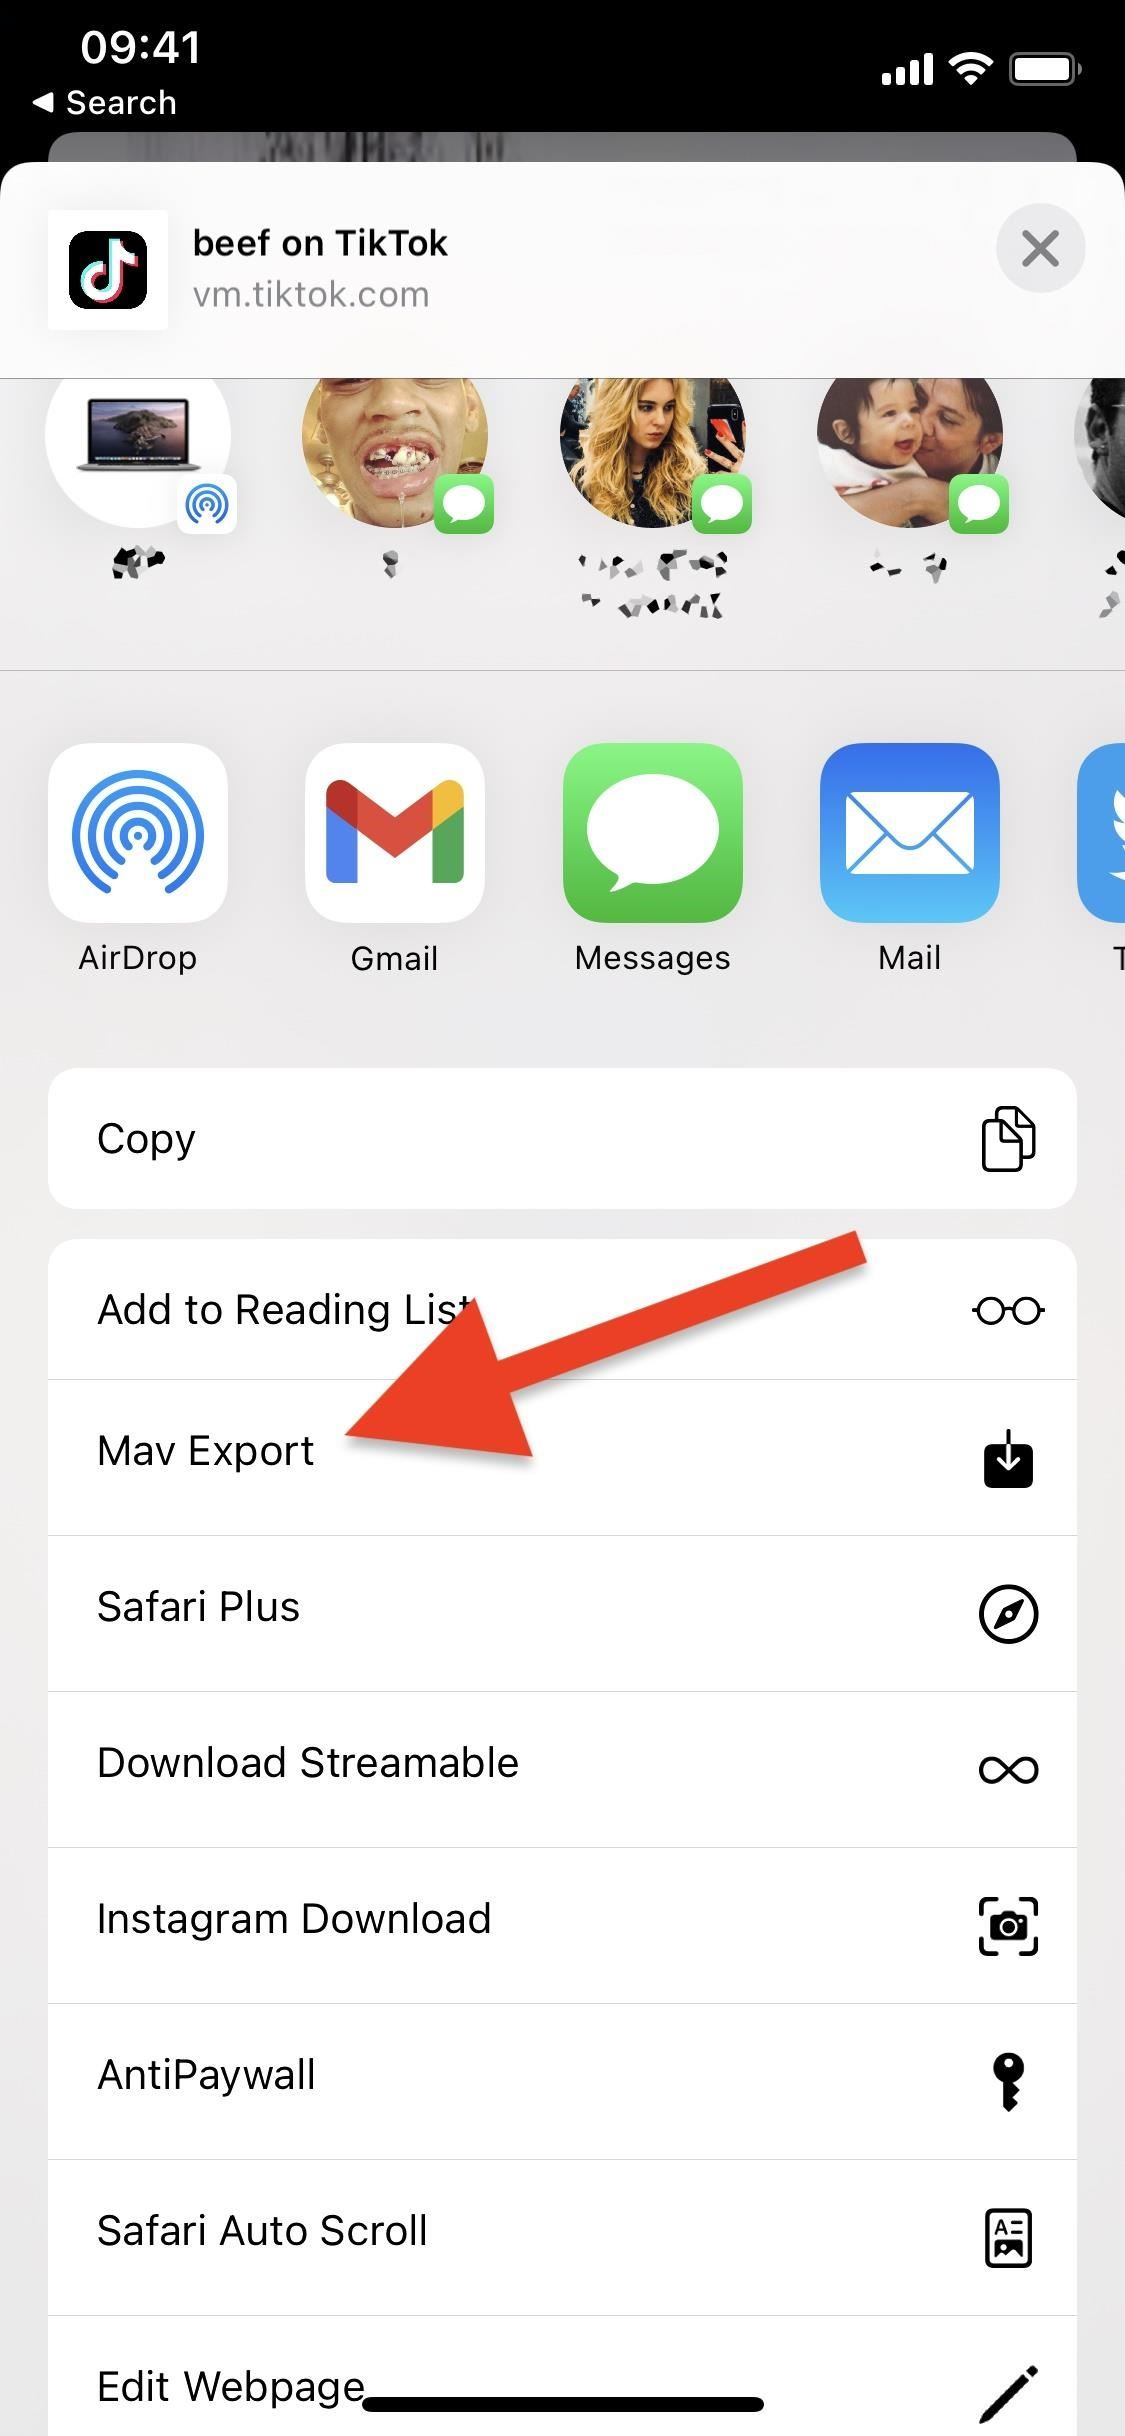 How to Download TikTok Videos Without Watermarks on Your iPhone